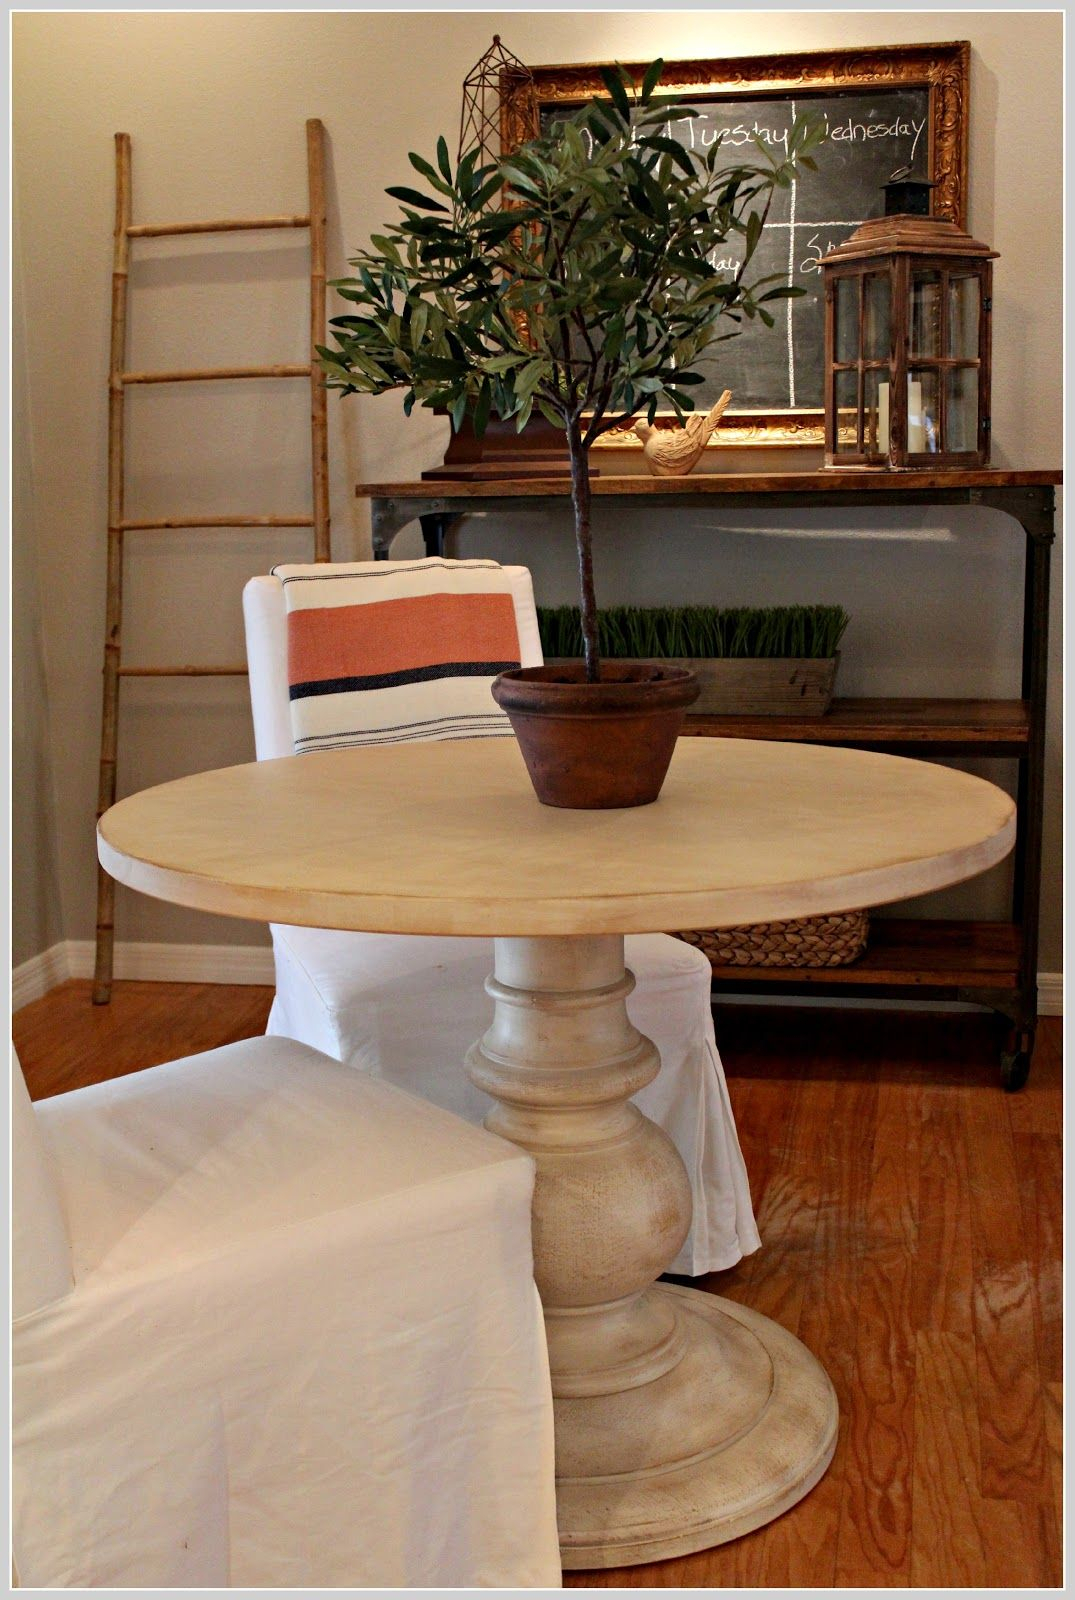 Pottery Barn Dawson Pedestal Table White – Google Search With Regard To Latest Dawson Pedestal Tables (View 3 of 25)